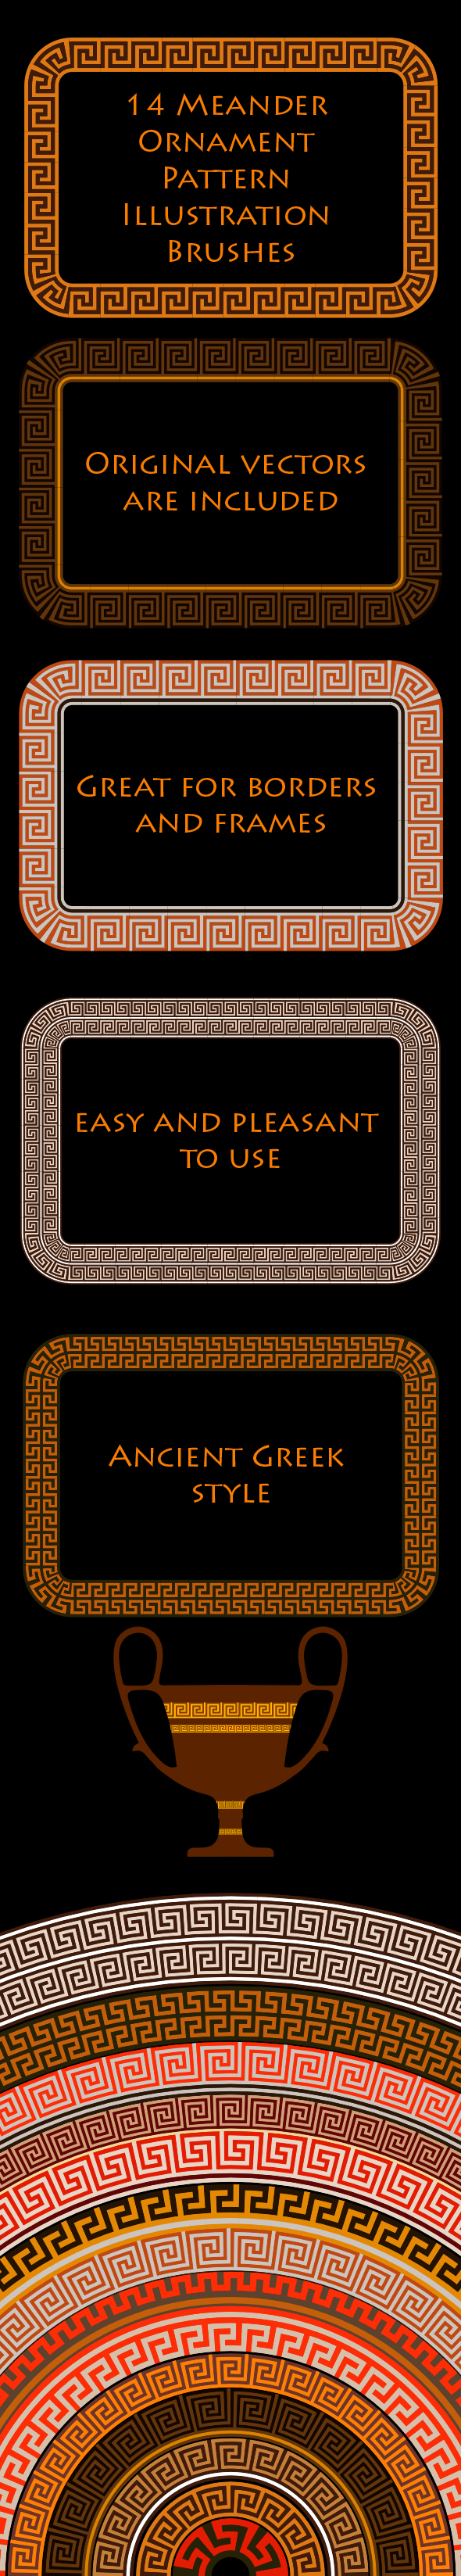 GraphicRiver Meander Ornament Ancient Greek Motive Adobe Illustrator Brushes 20961634